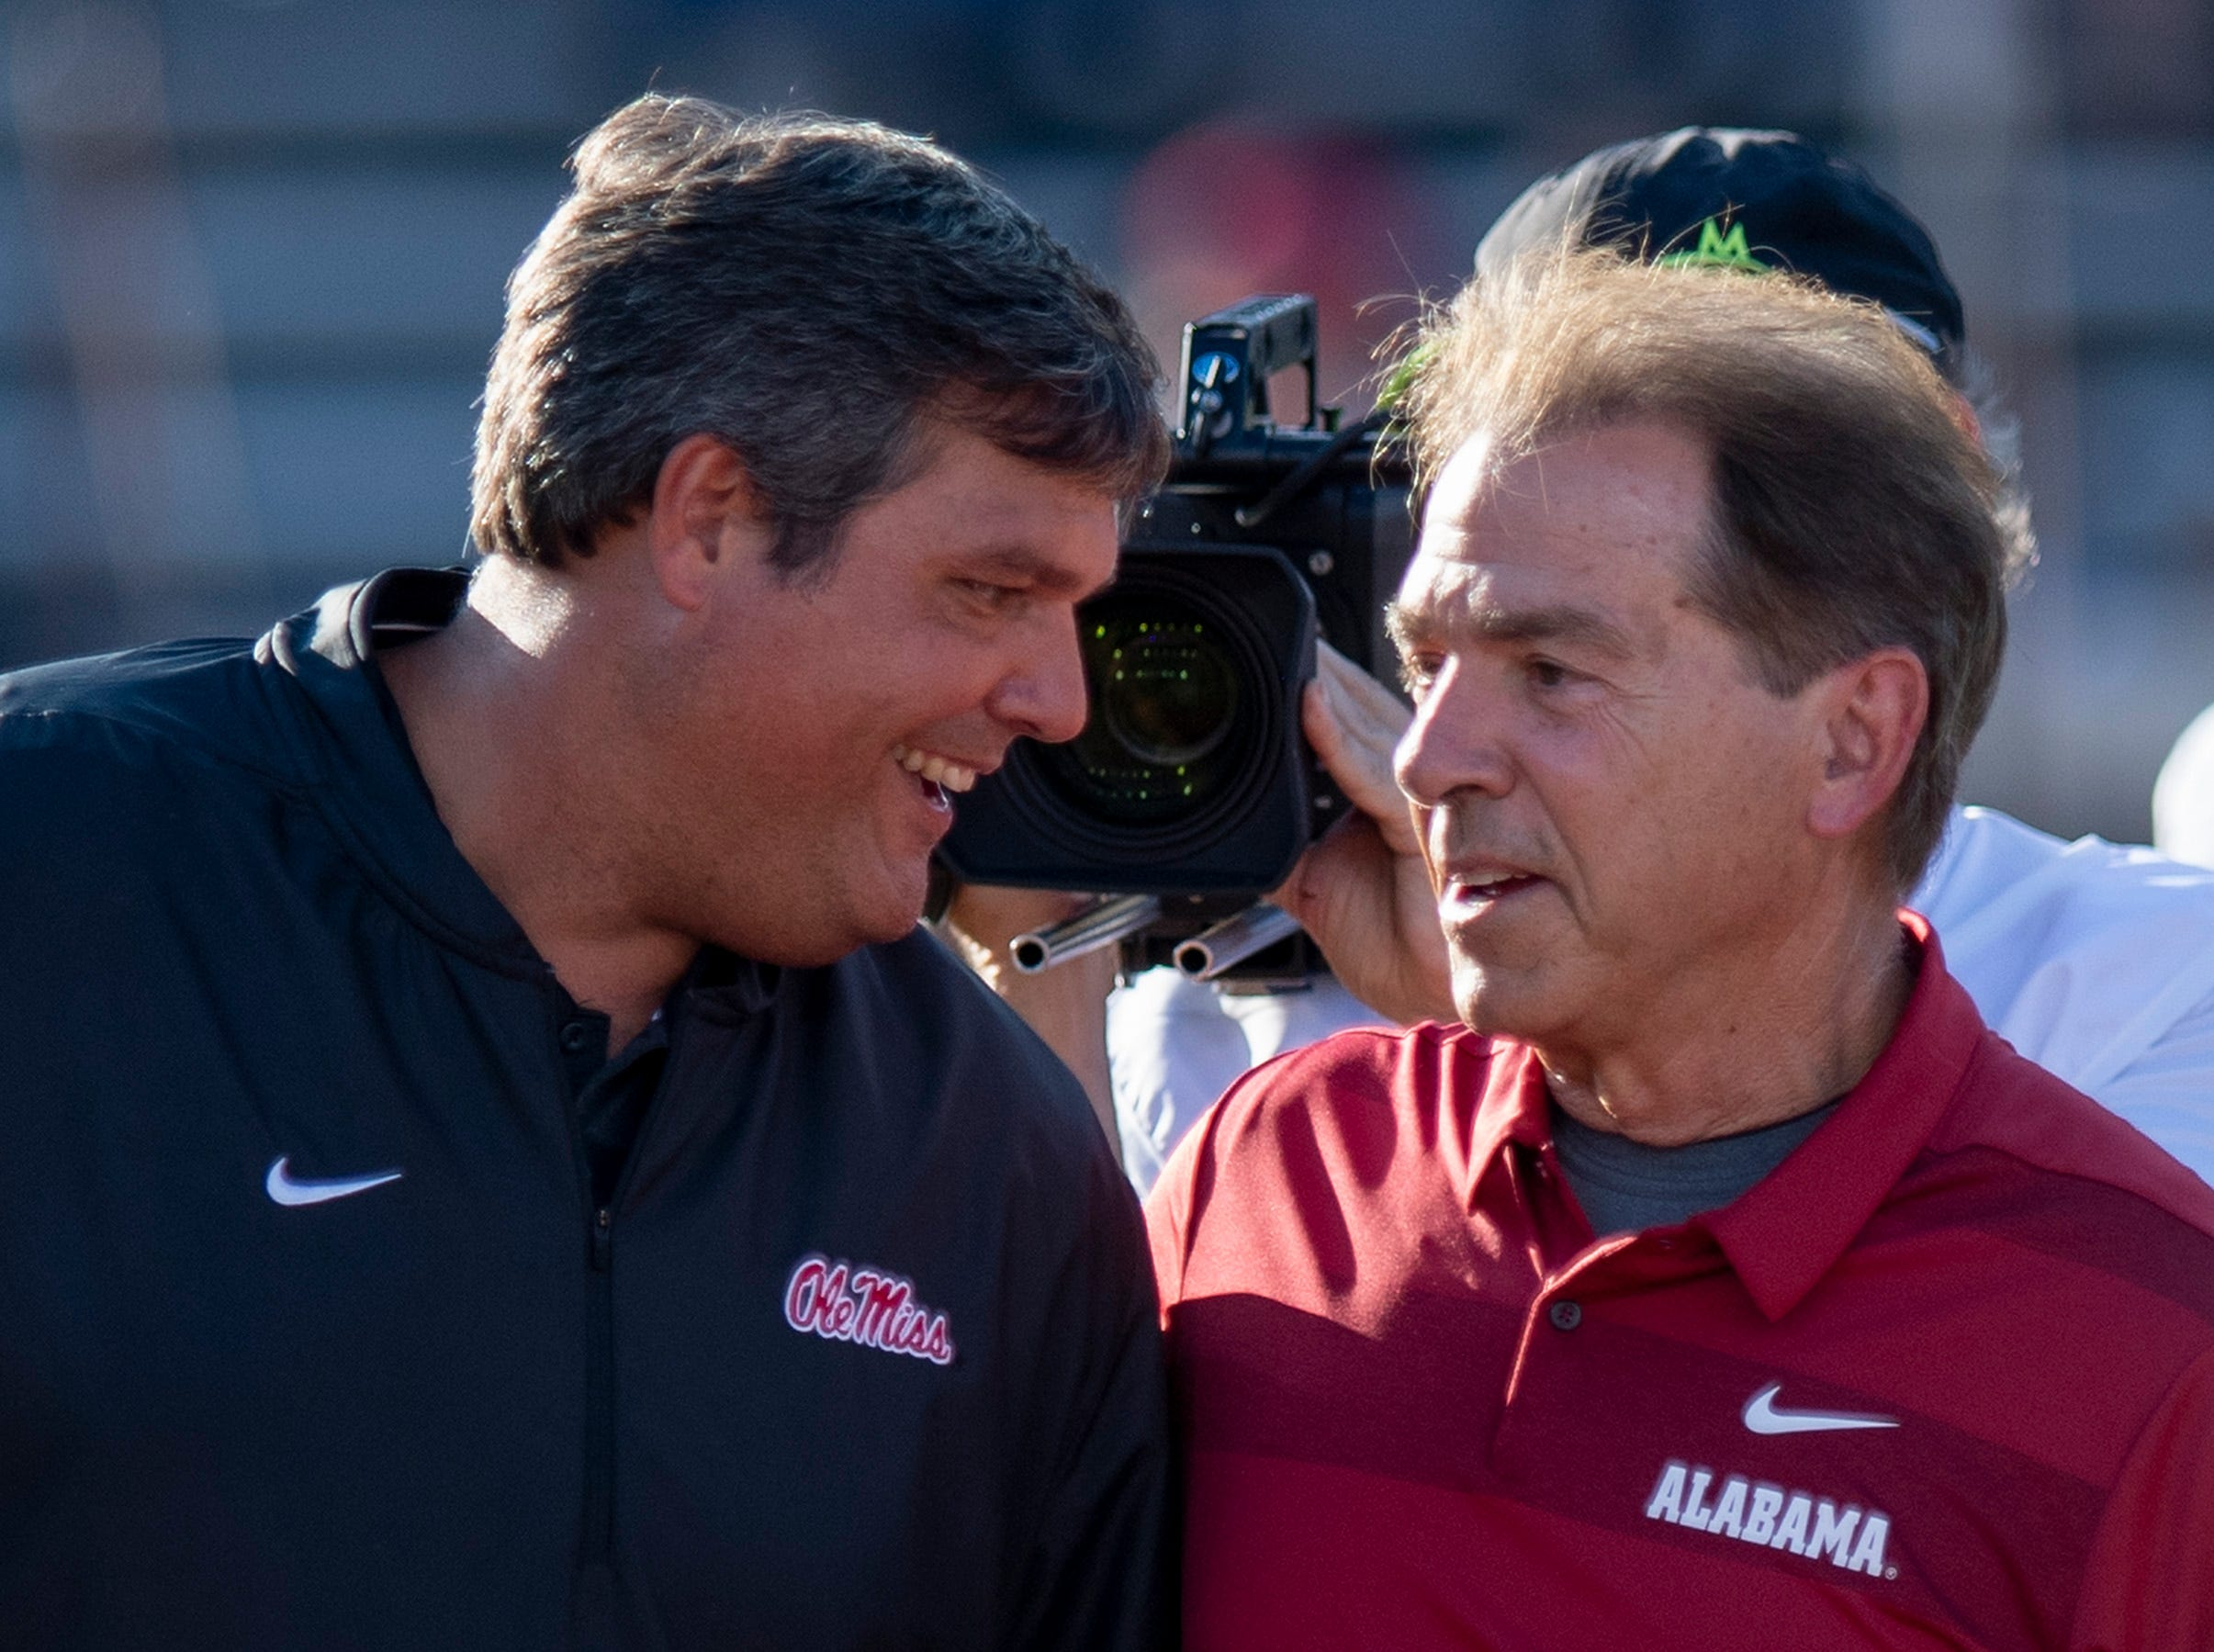 Ole Miss head coach Matt Luke and Alabama head coach Nick Saban greet during warm ups before the Ole Miss game in Oxford, Ms., on Saturday September 15, 2018.